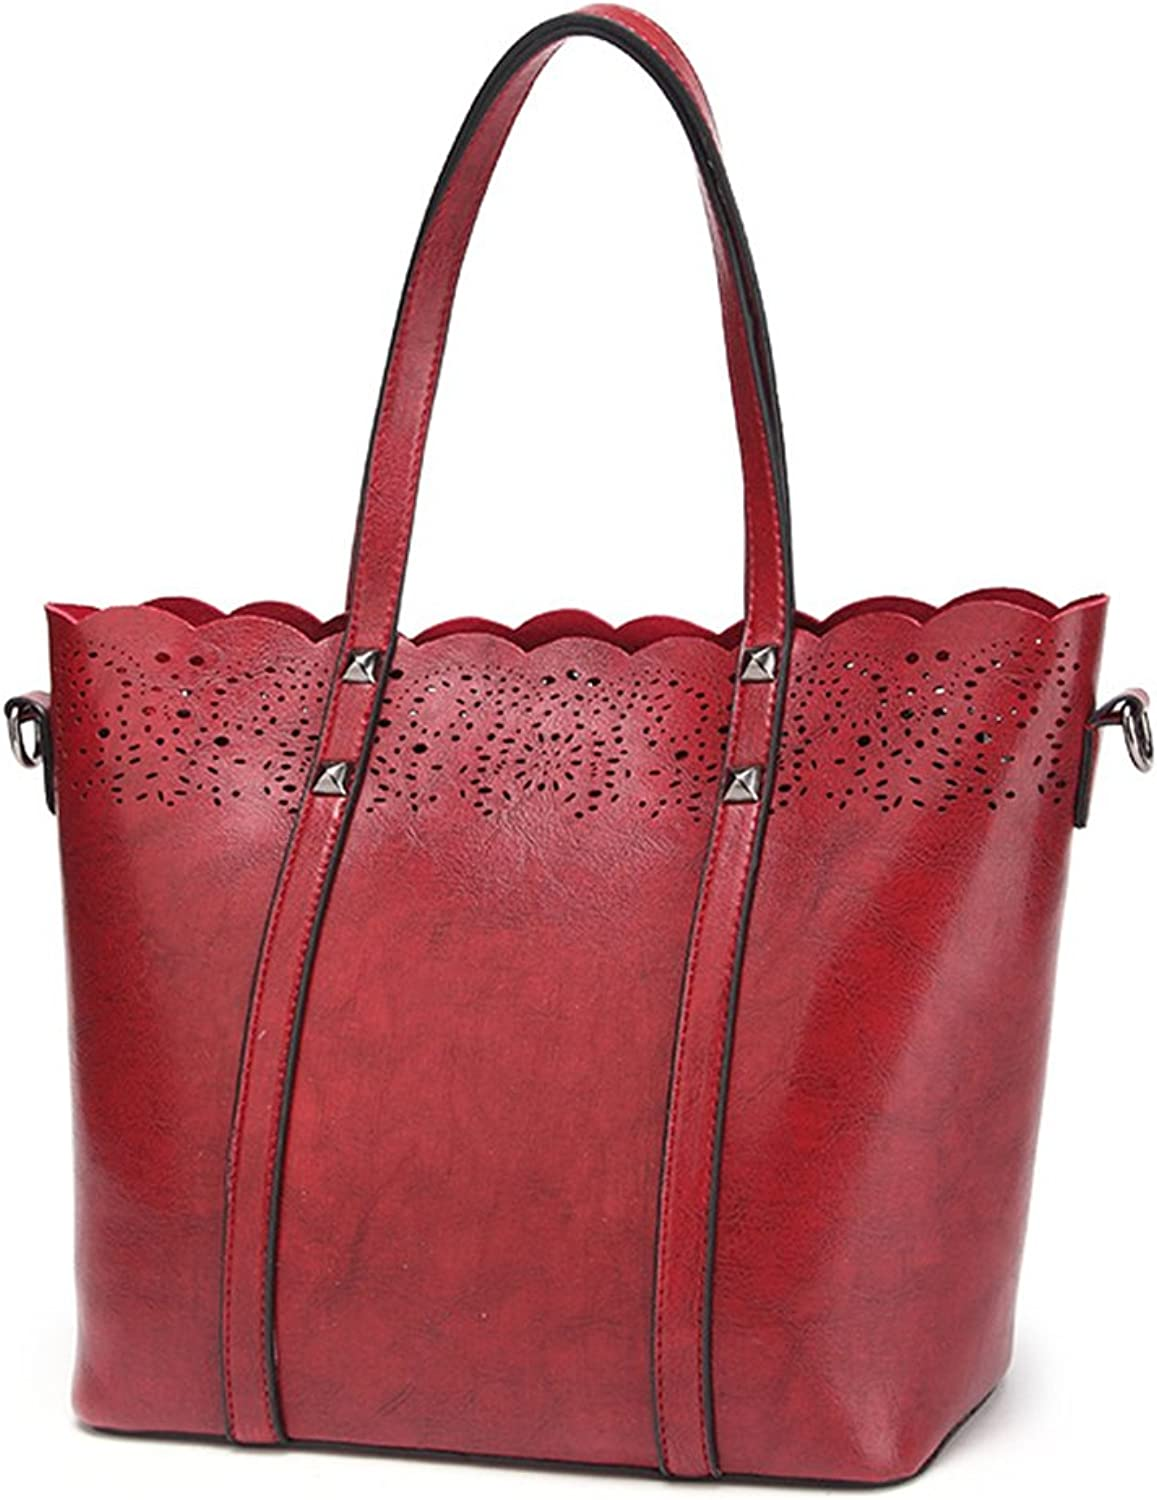 Srilemes New Simple Retro Single Shoulder Handbag Leather Handbags